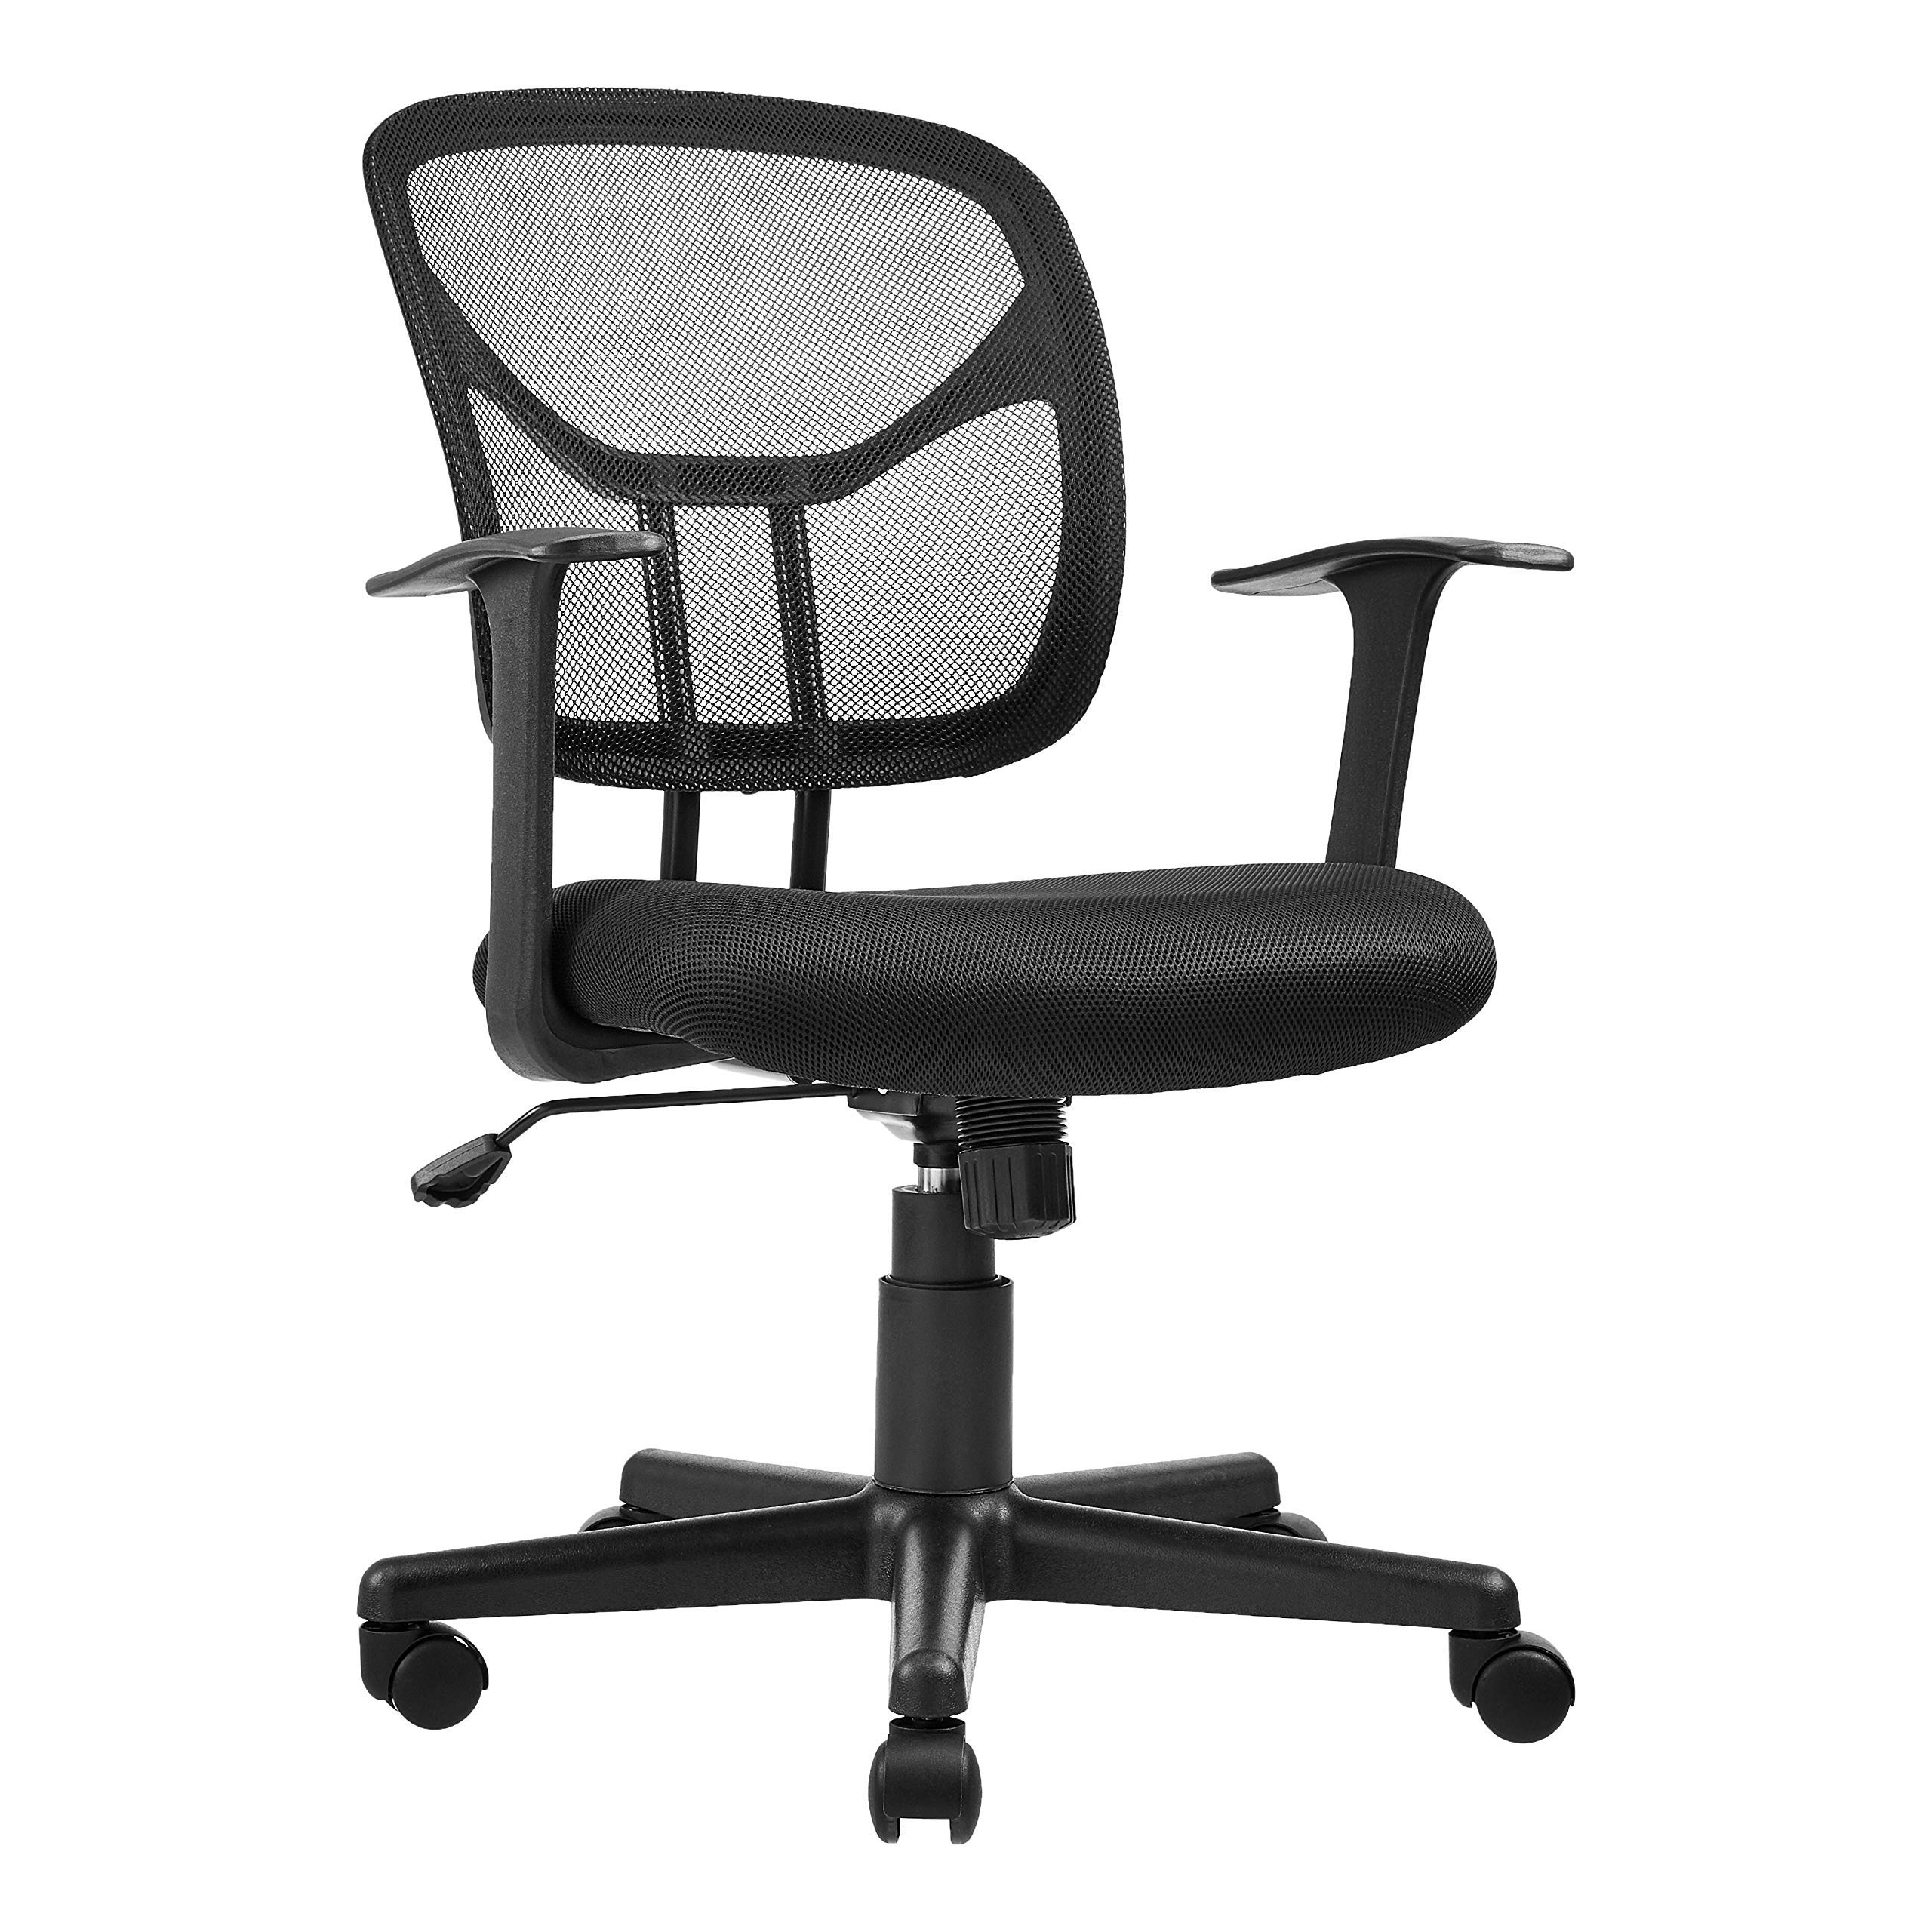 AmazonBasics Mid-Back Desk Office Chair with Armrests - Mesh Back, Swivels - Black by AmazonBasics